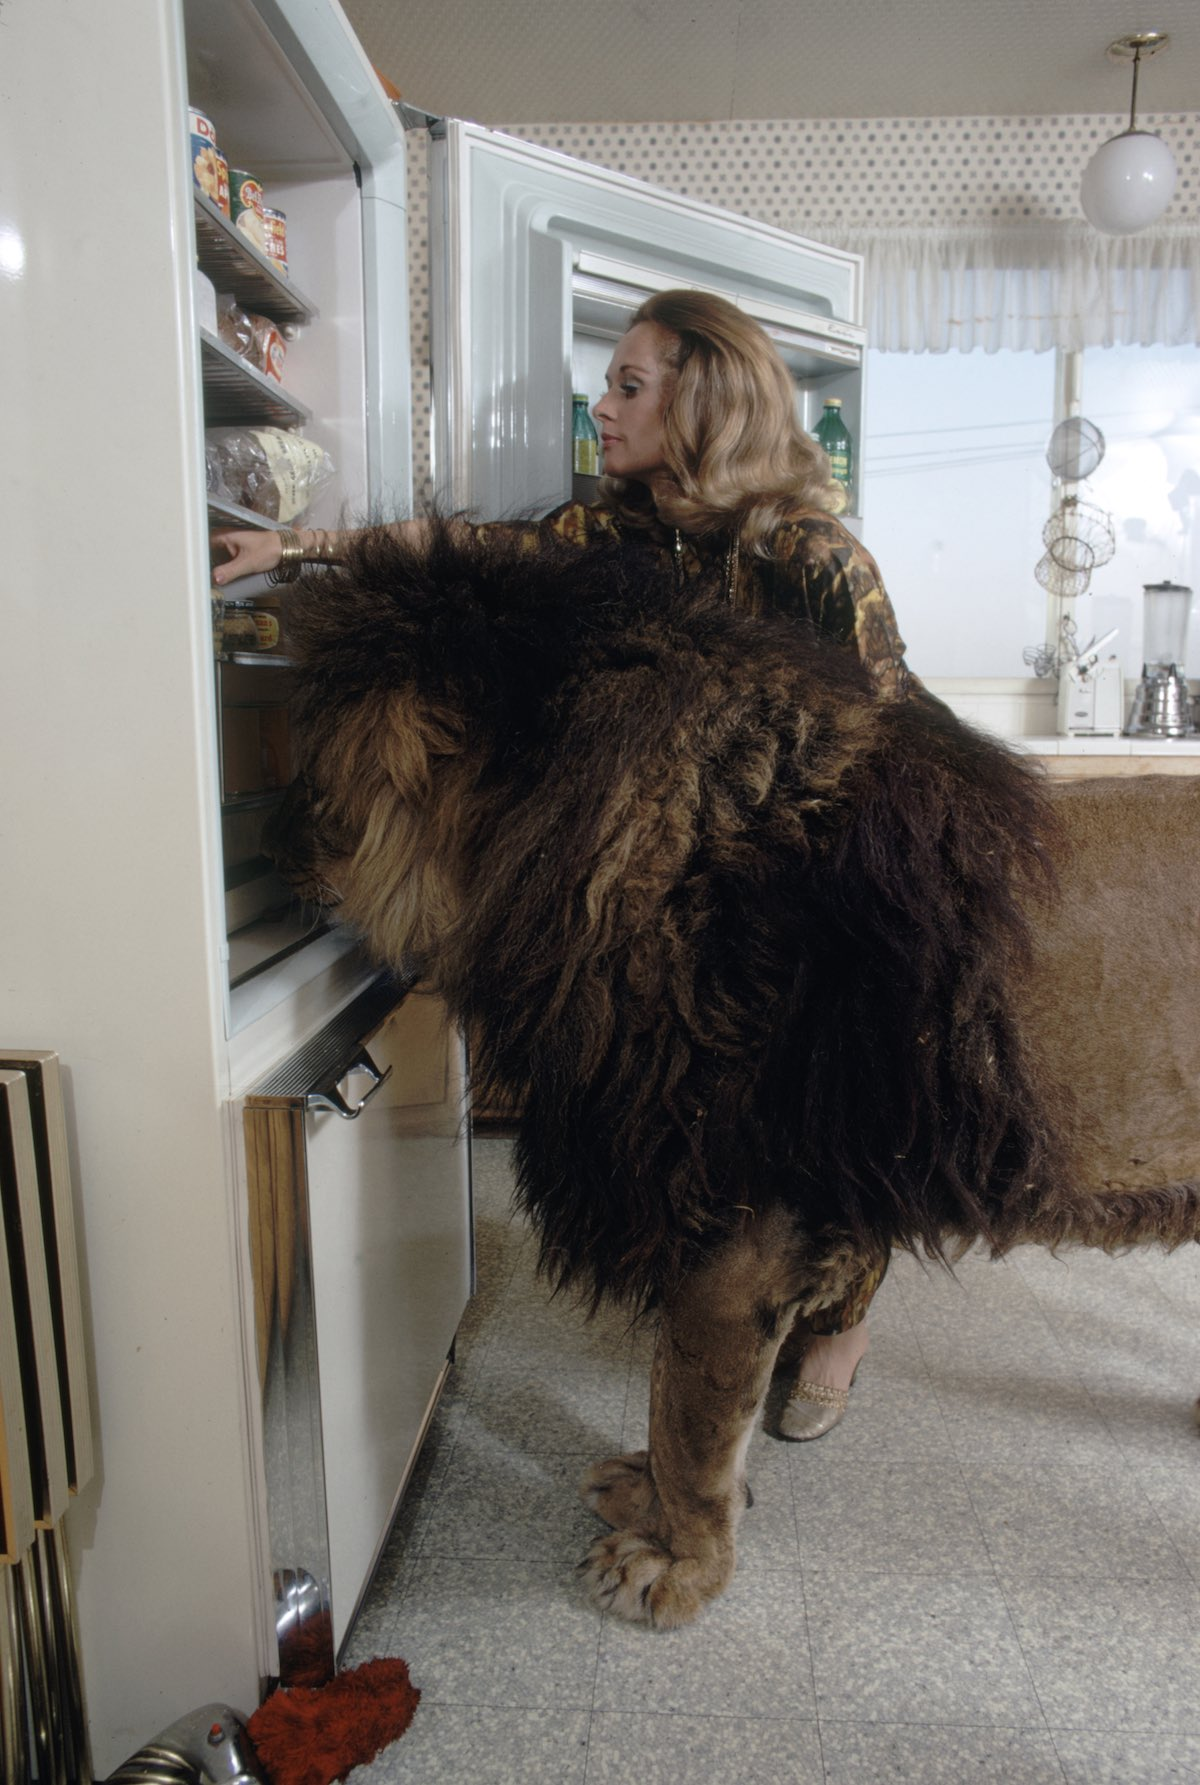 Subject: Tippi Hederen going in refridgerator with pet lion named Nei at her side. Sherman Oaks, California May 1971 Photographer- Michael Rougier Time Inc Owned Merlin-  1200554